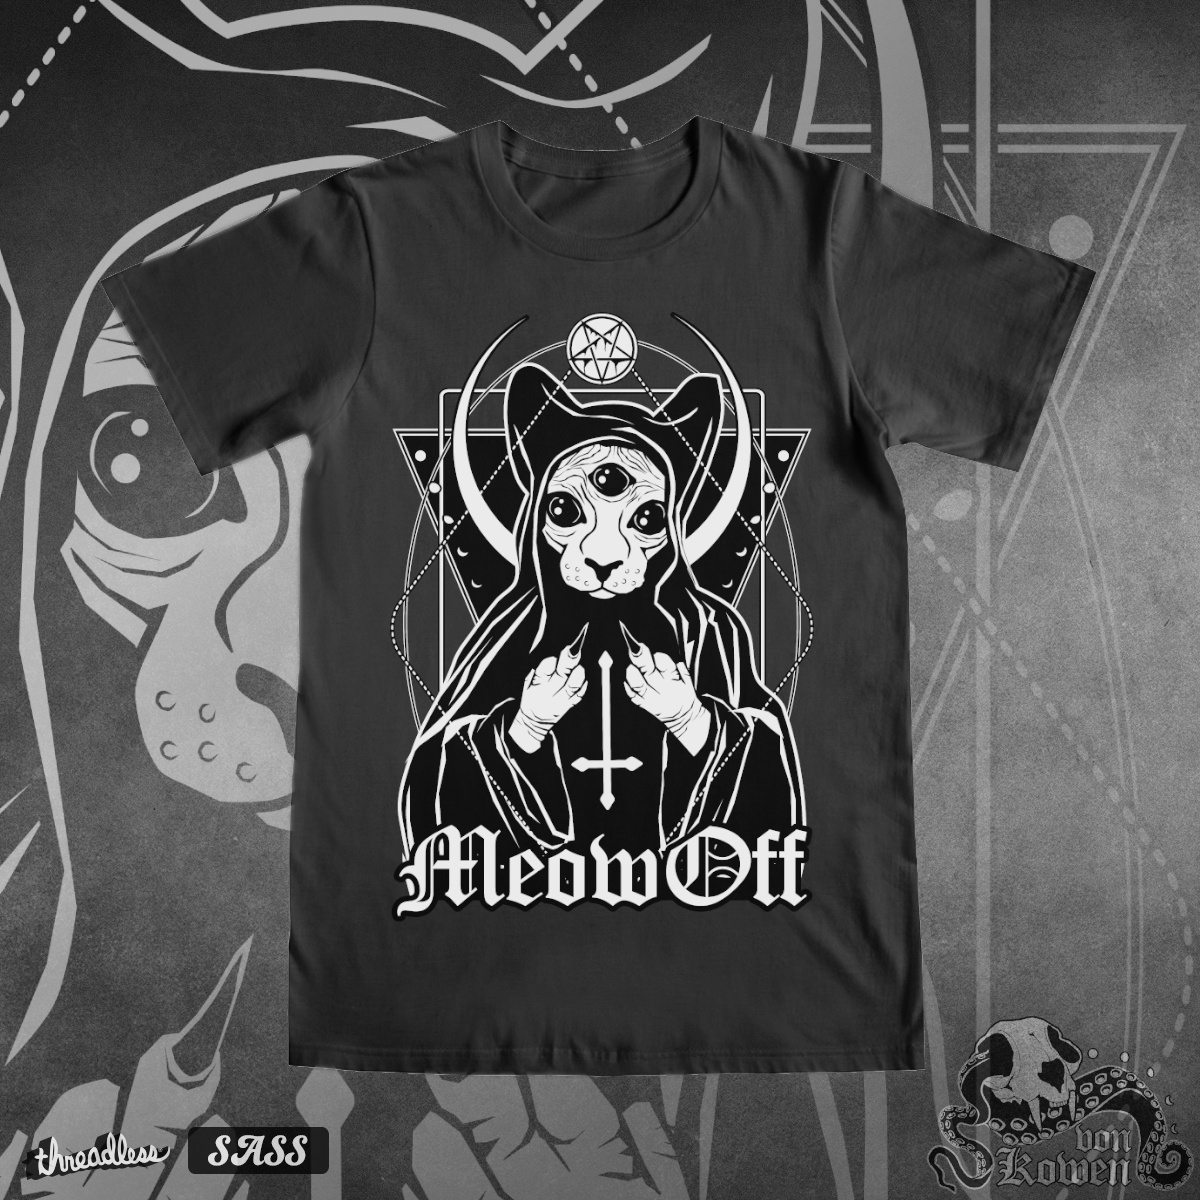 Meow off, a cool t-shirt design